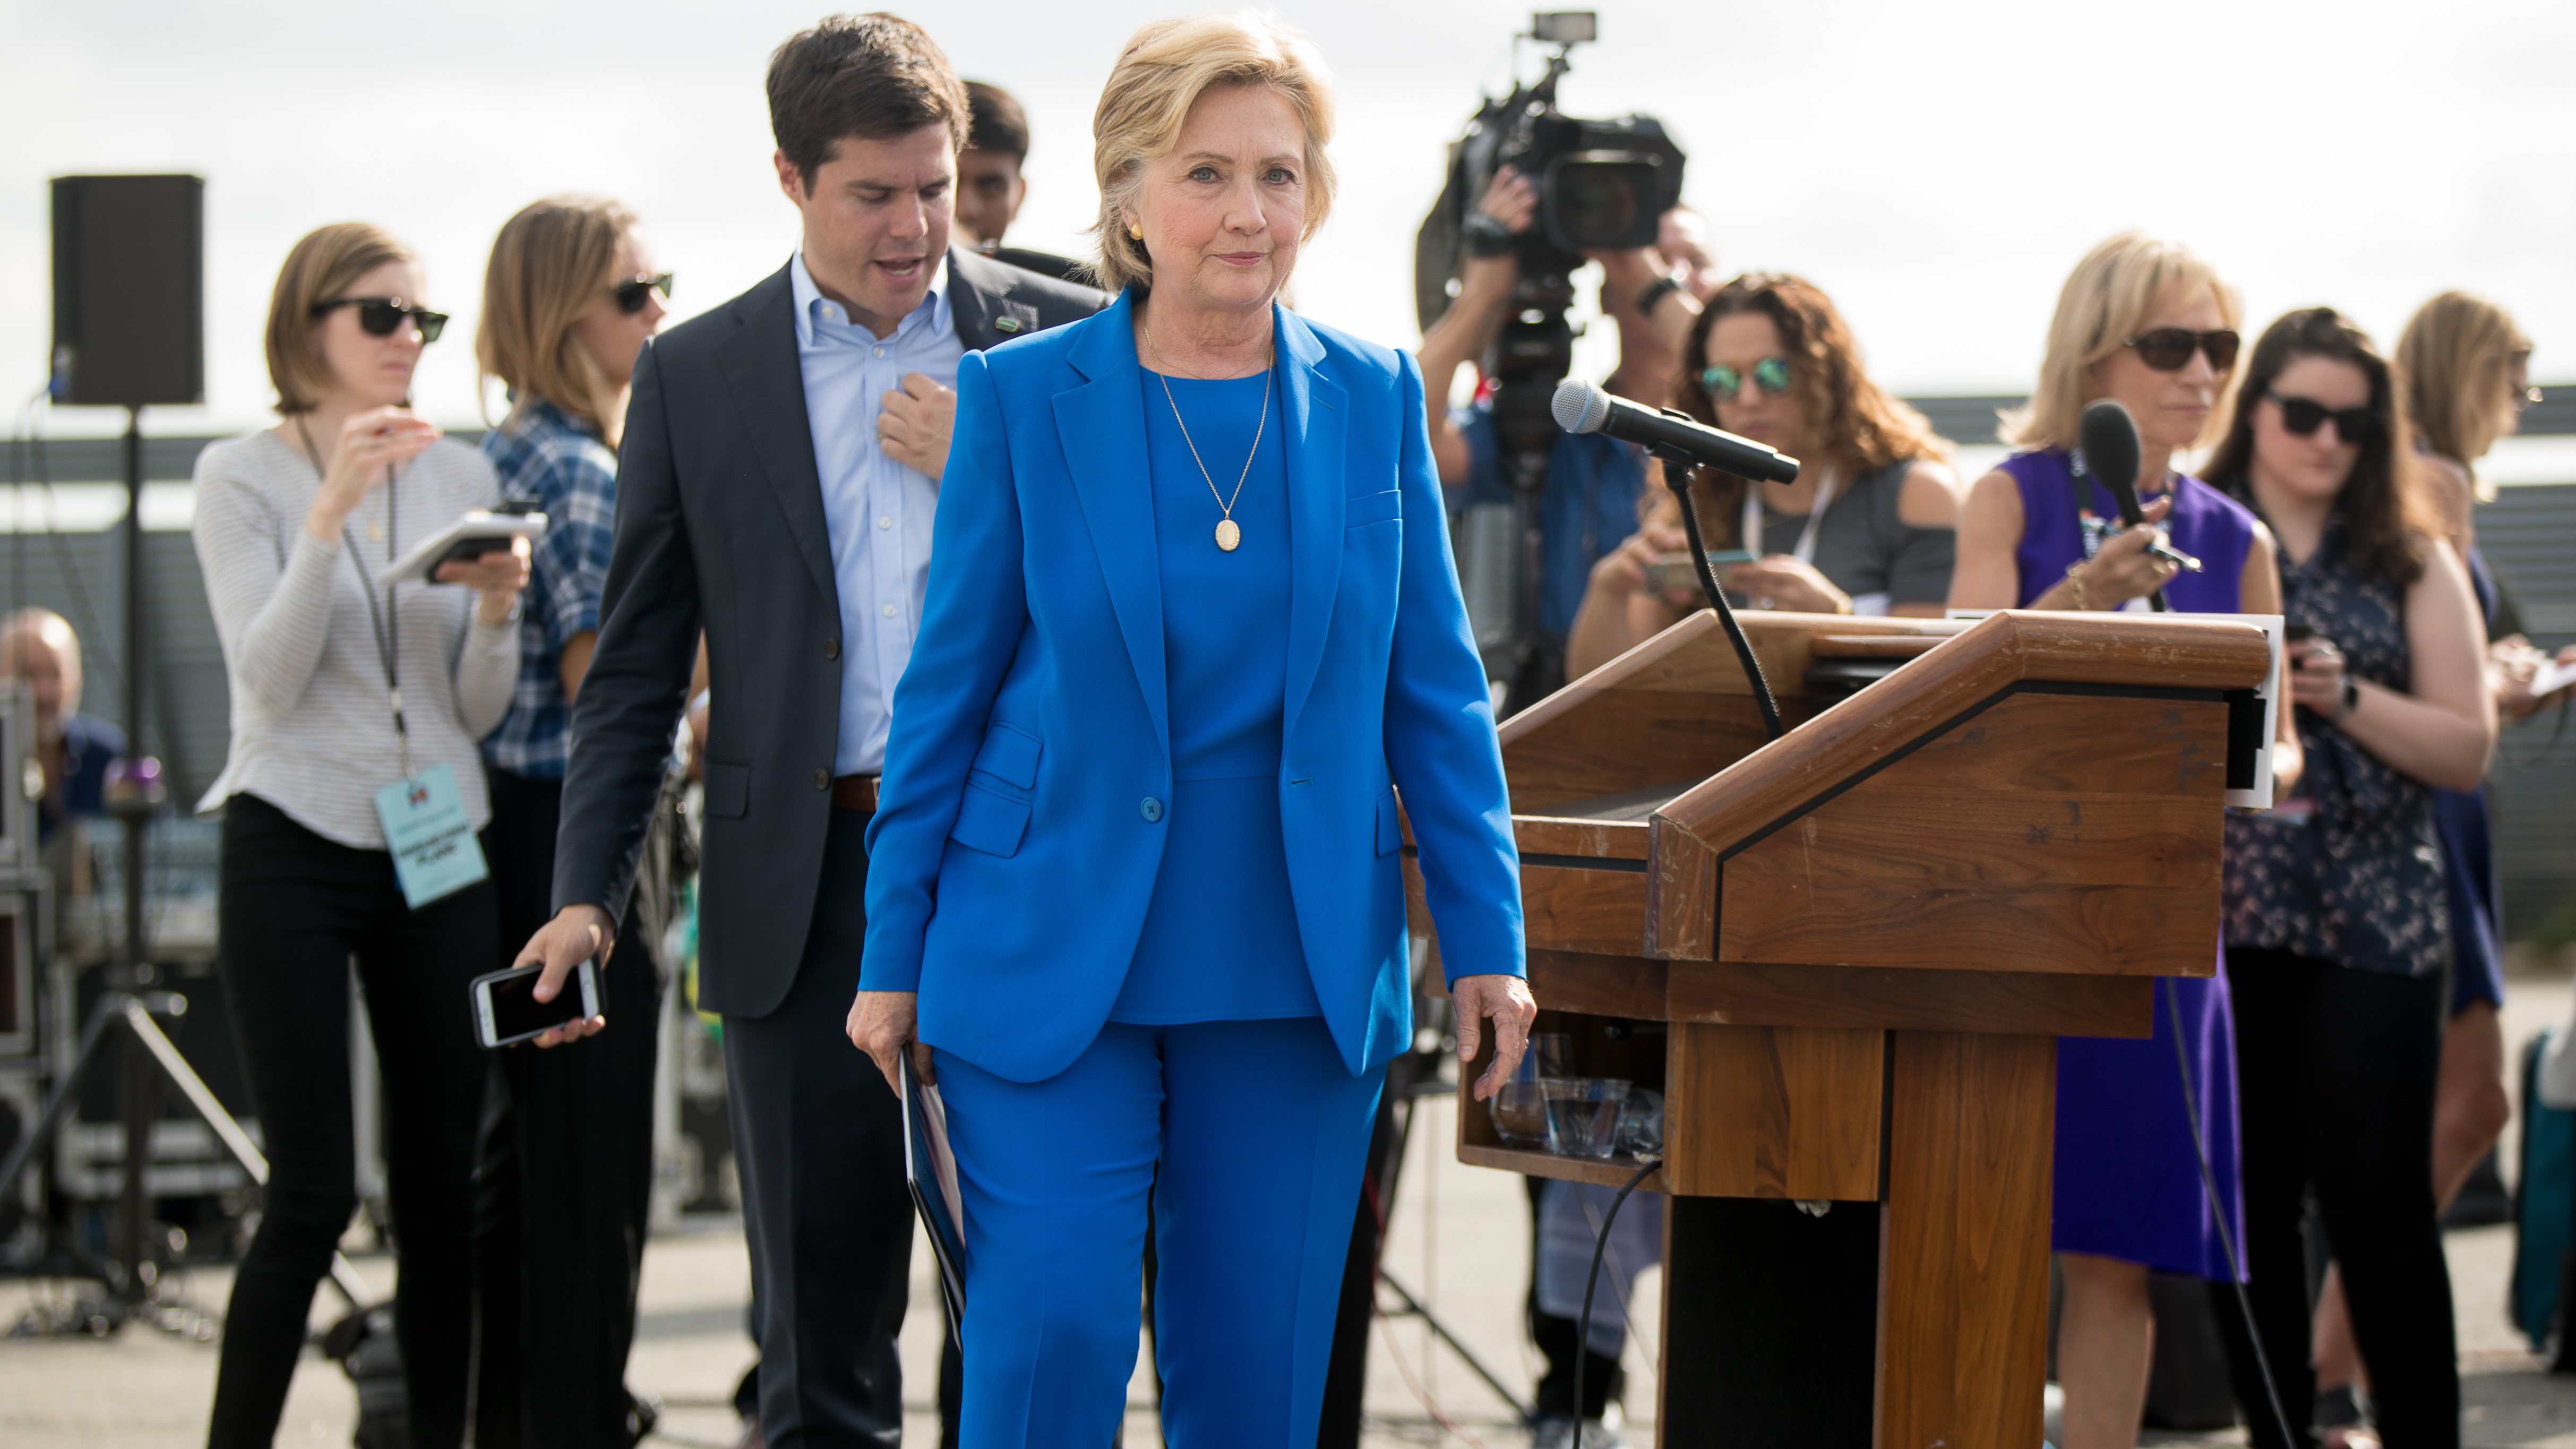 Democratic presidential candidate Hillary Clinton walks towards her campaign plane Thursday in White Plains, N.Y. (Photo by Andrew Harnik/Associated Press)